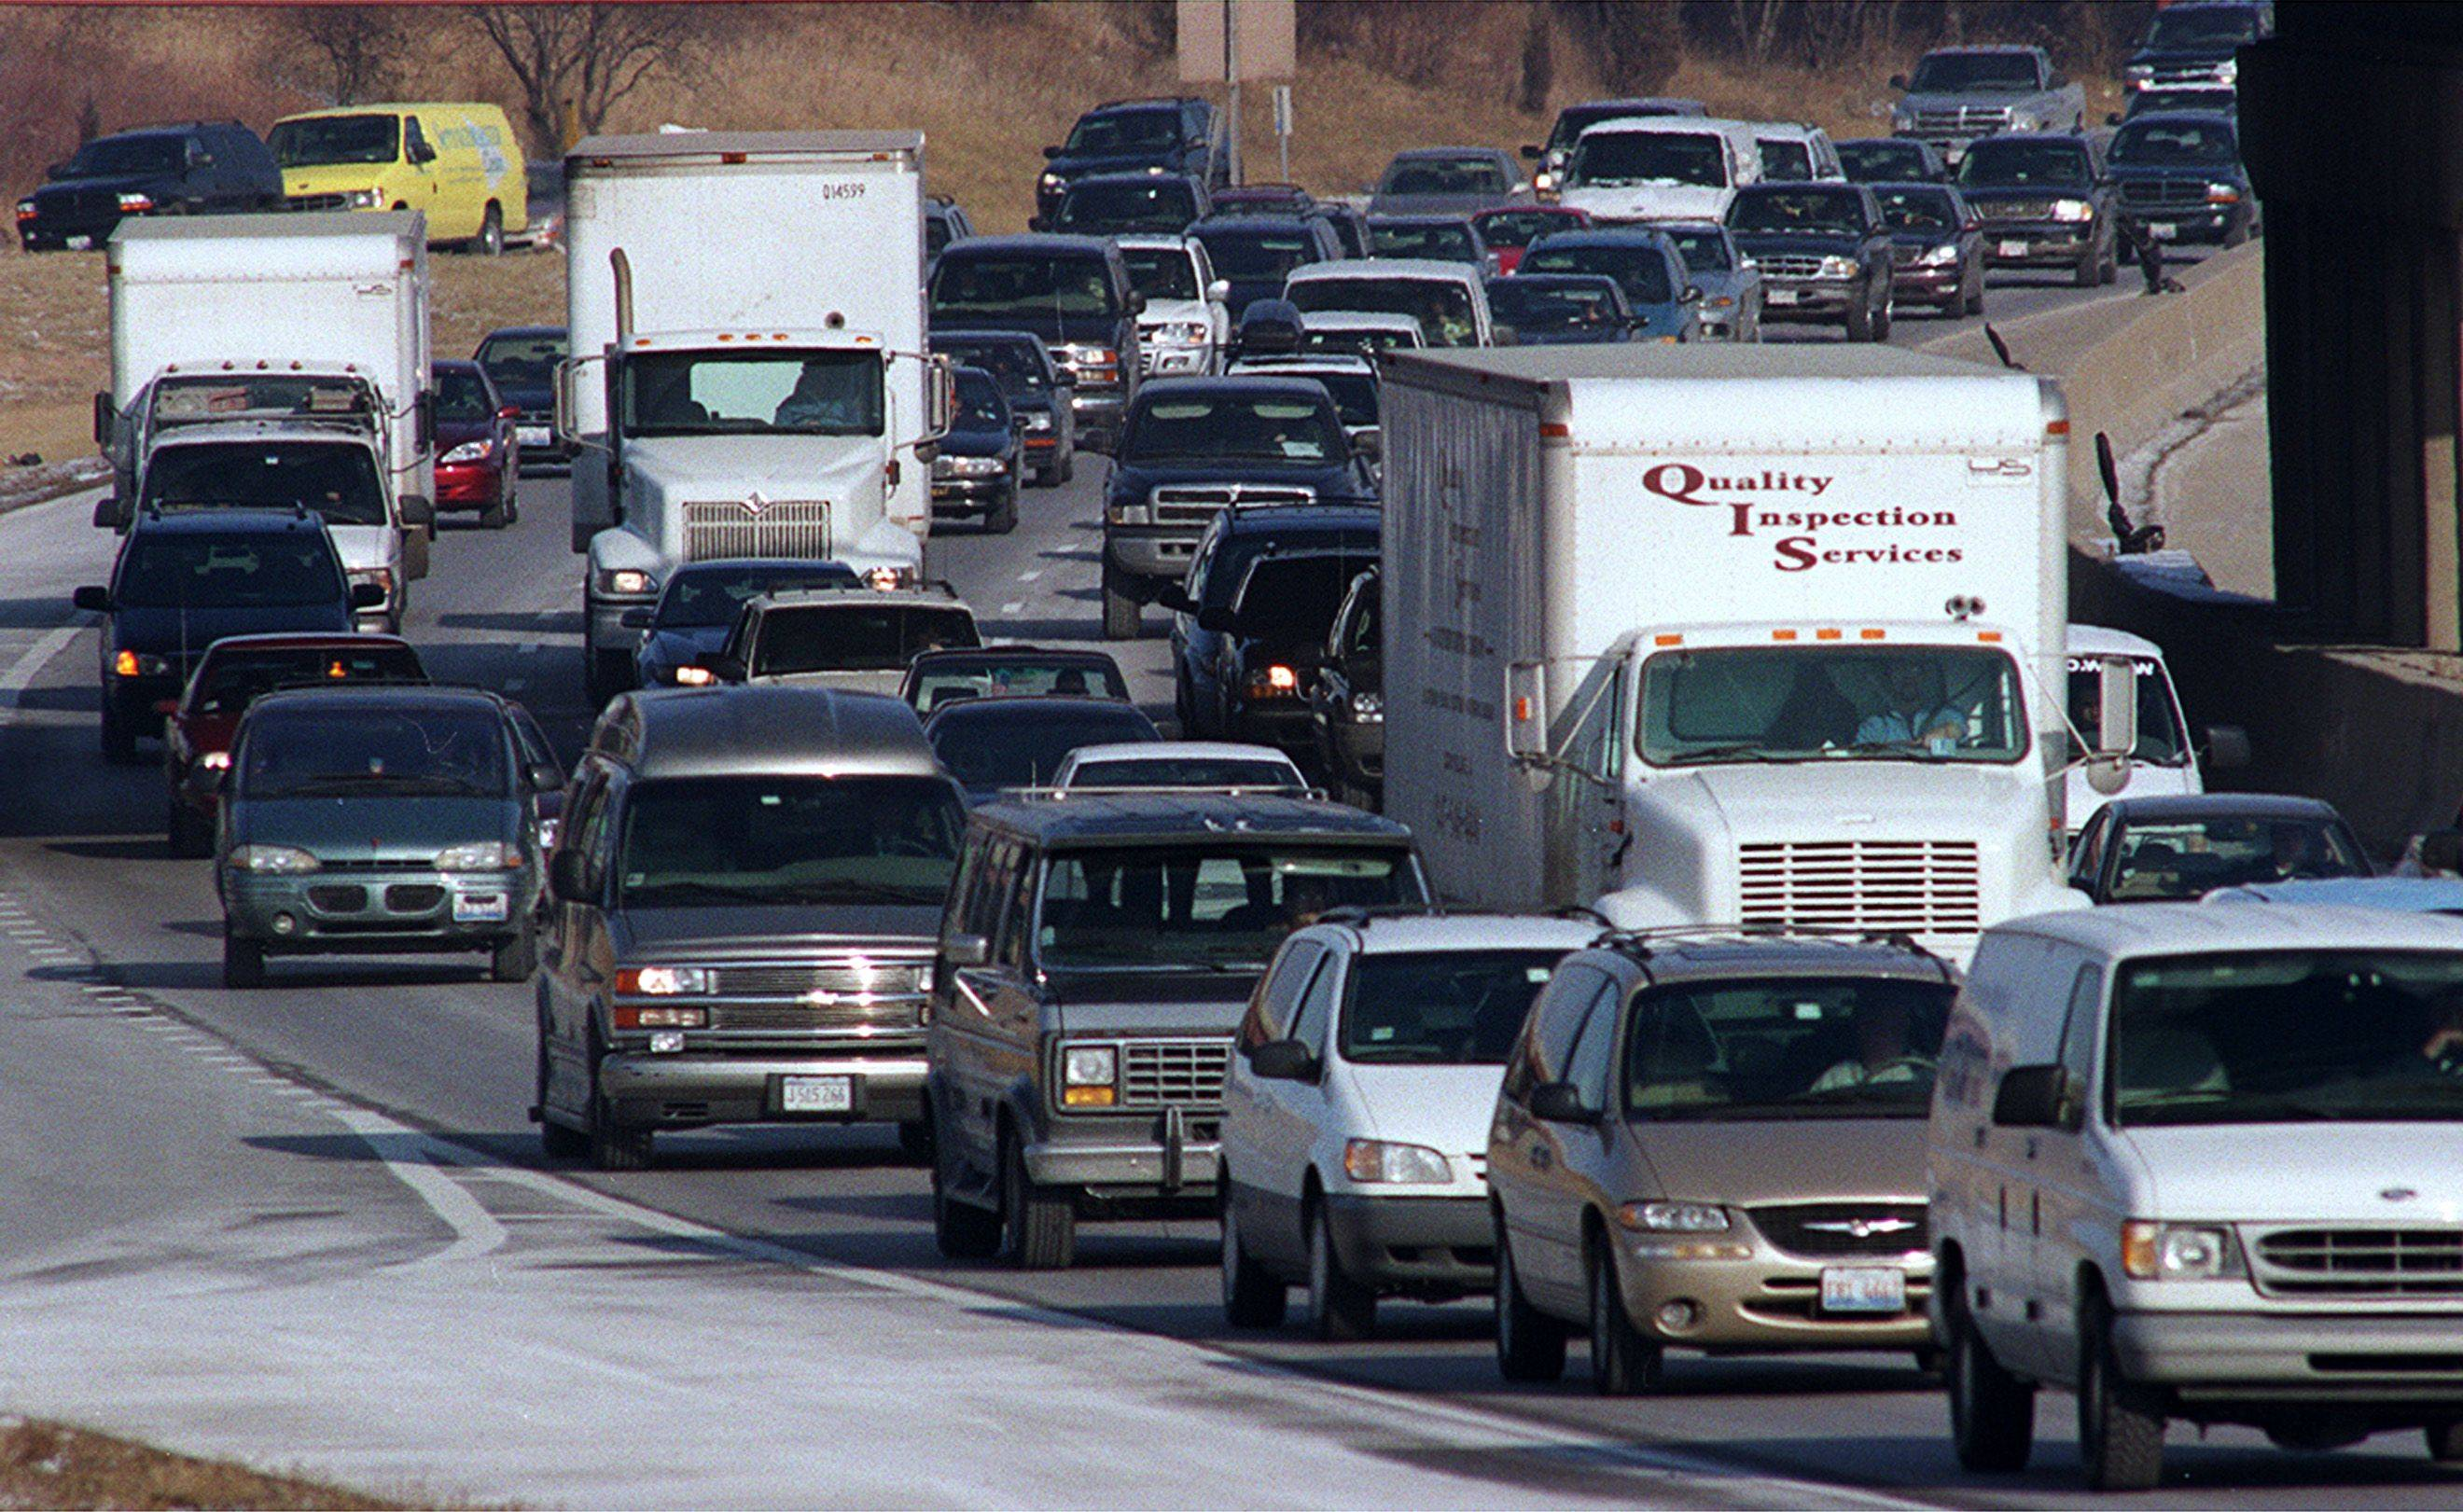 A new traffic study shows that Chicago ranks third in congested commutes in the country. Experts say we lose 40 hours a year sitting in traffic and could oftentimes ride a bike faster to work.